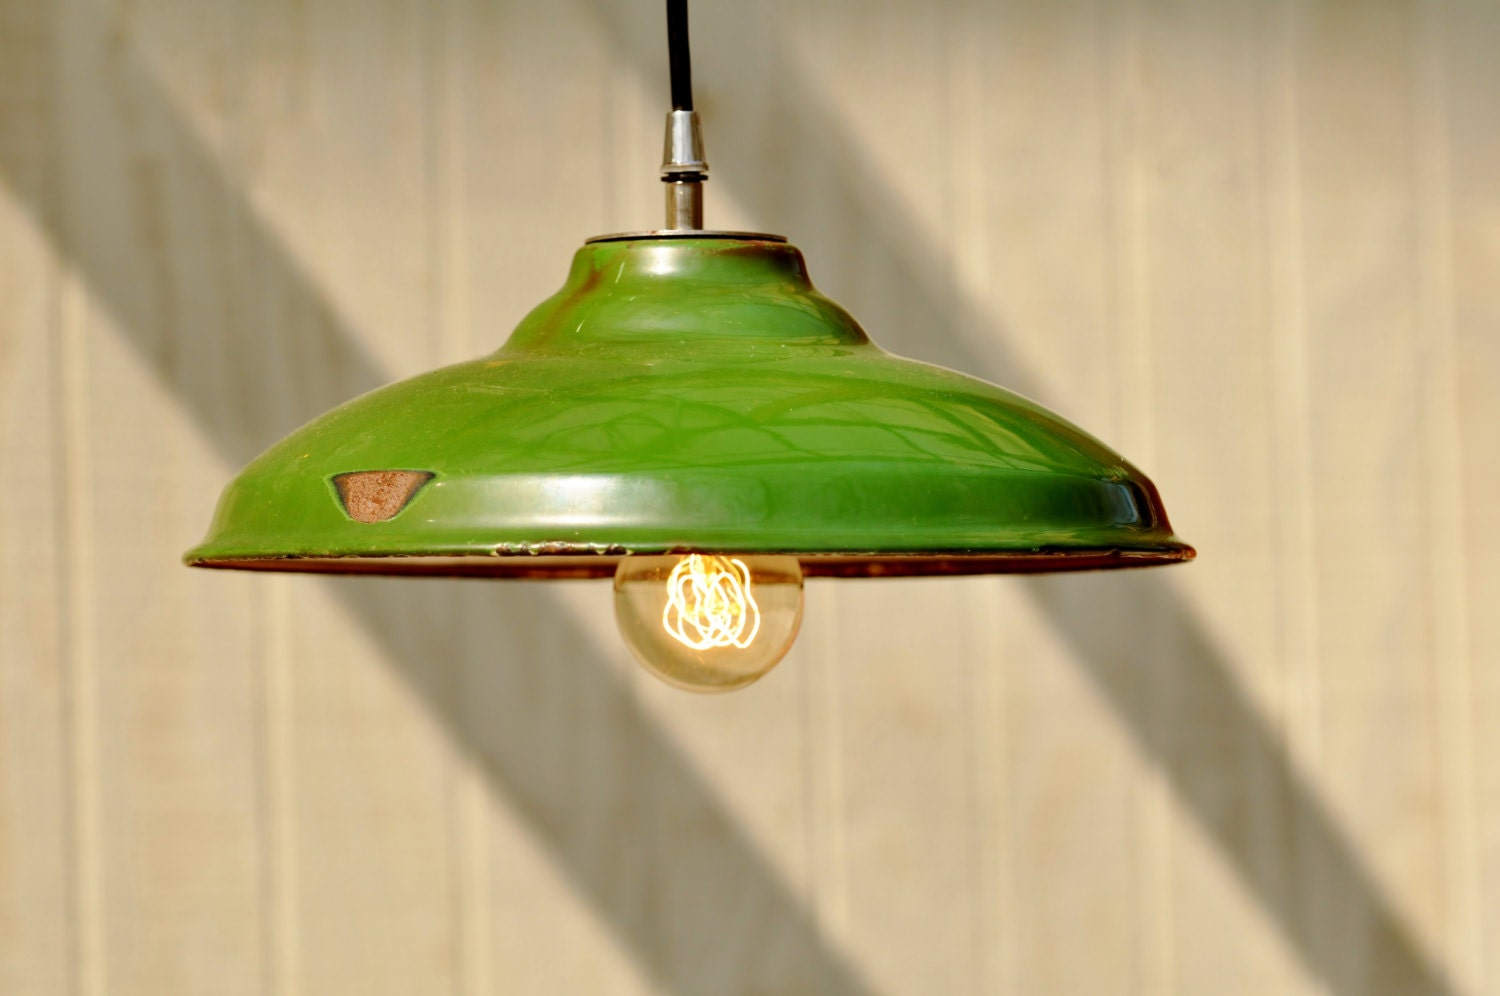 Hanging Industrial Light Vintage Upcycled Green Industrial